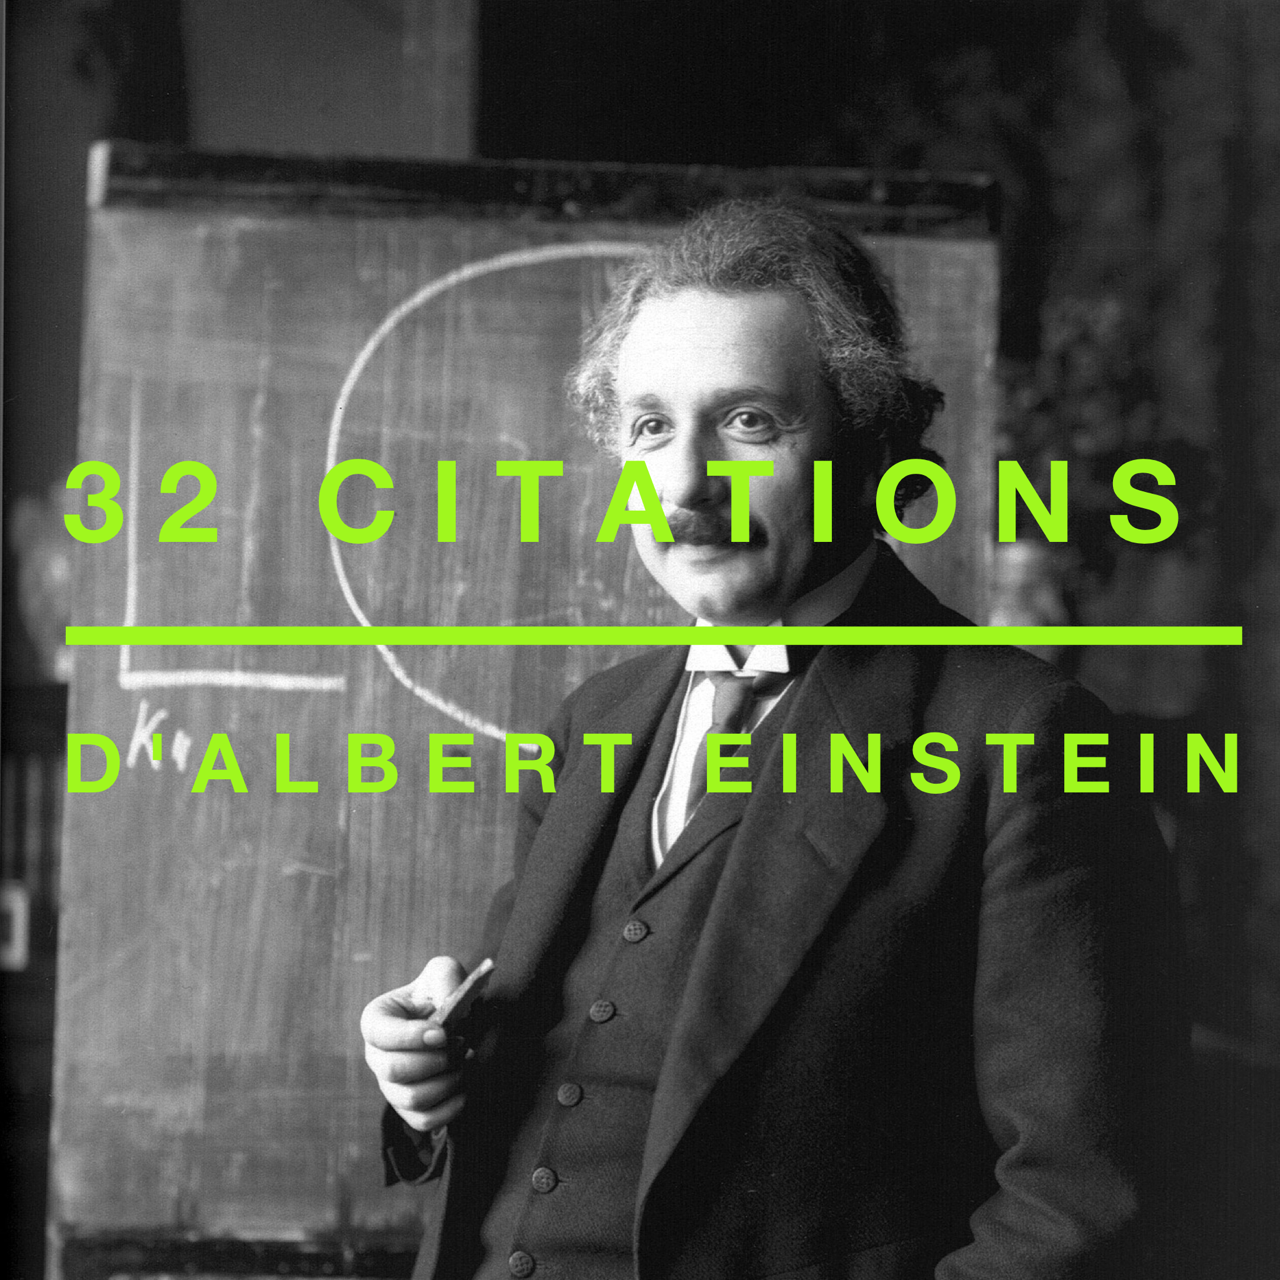 La sagesse et l'intelligence d'Albert Einstein en 32 citations